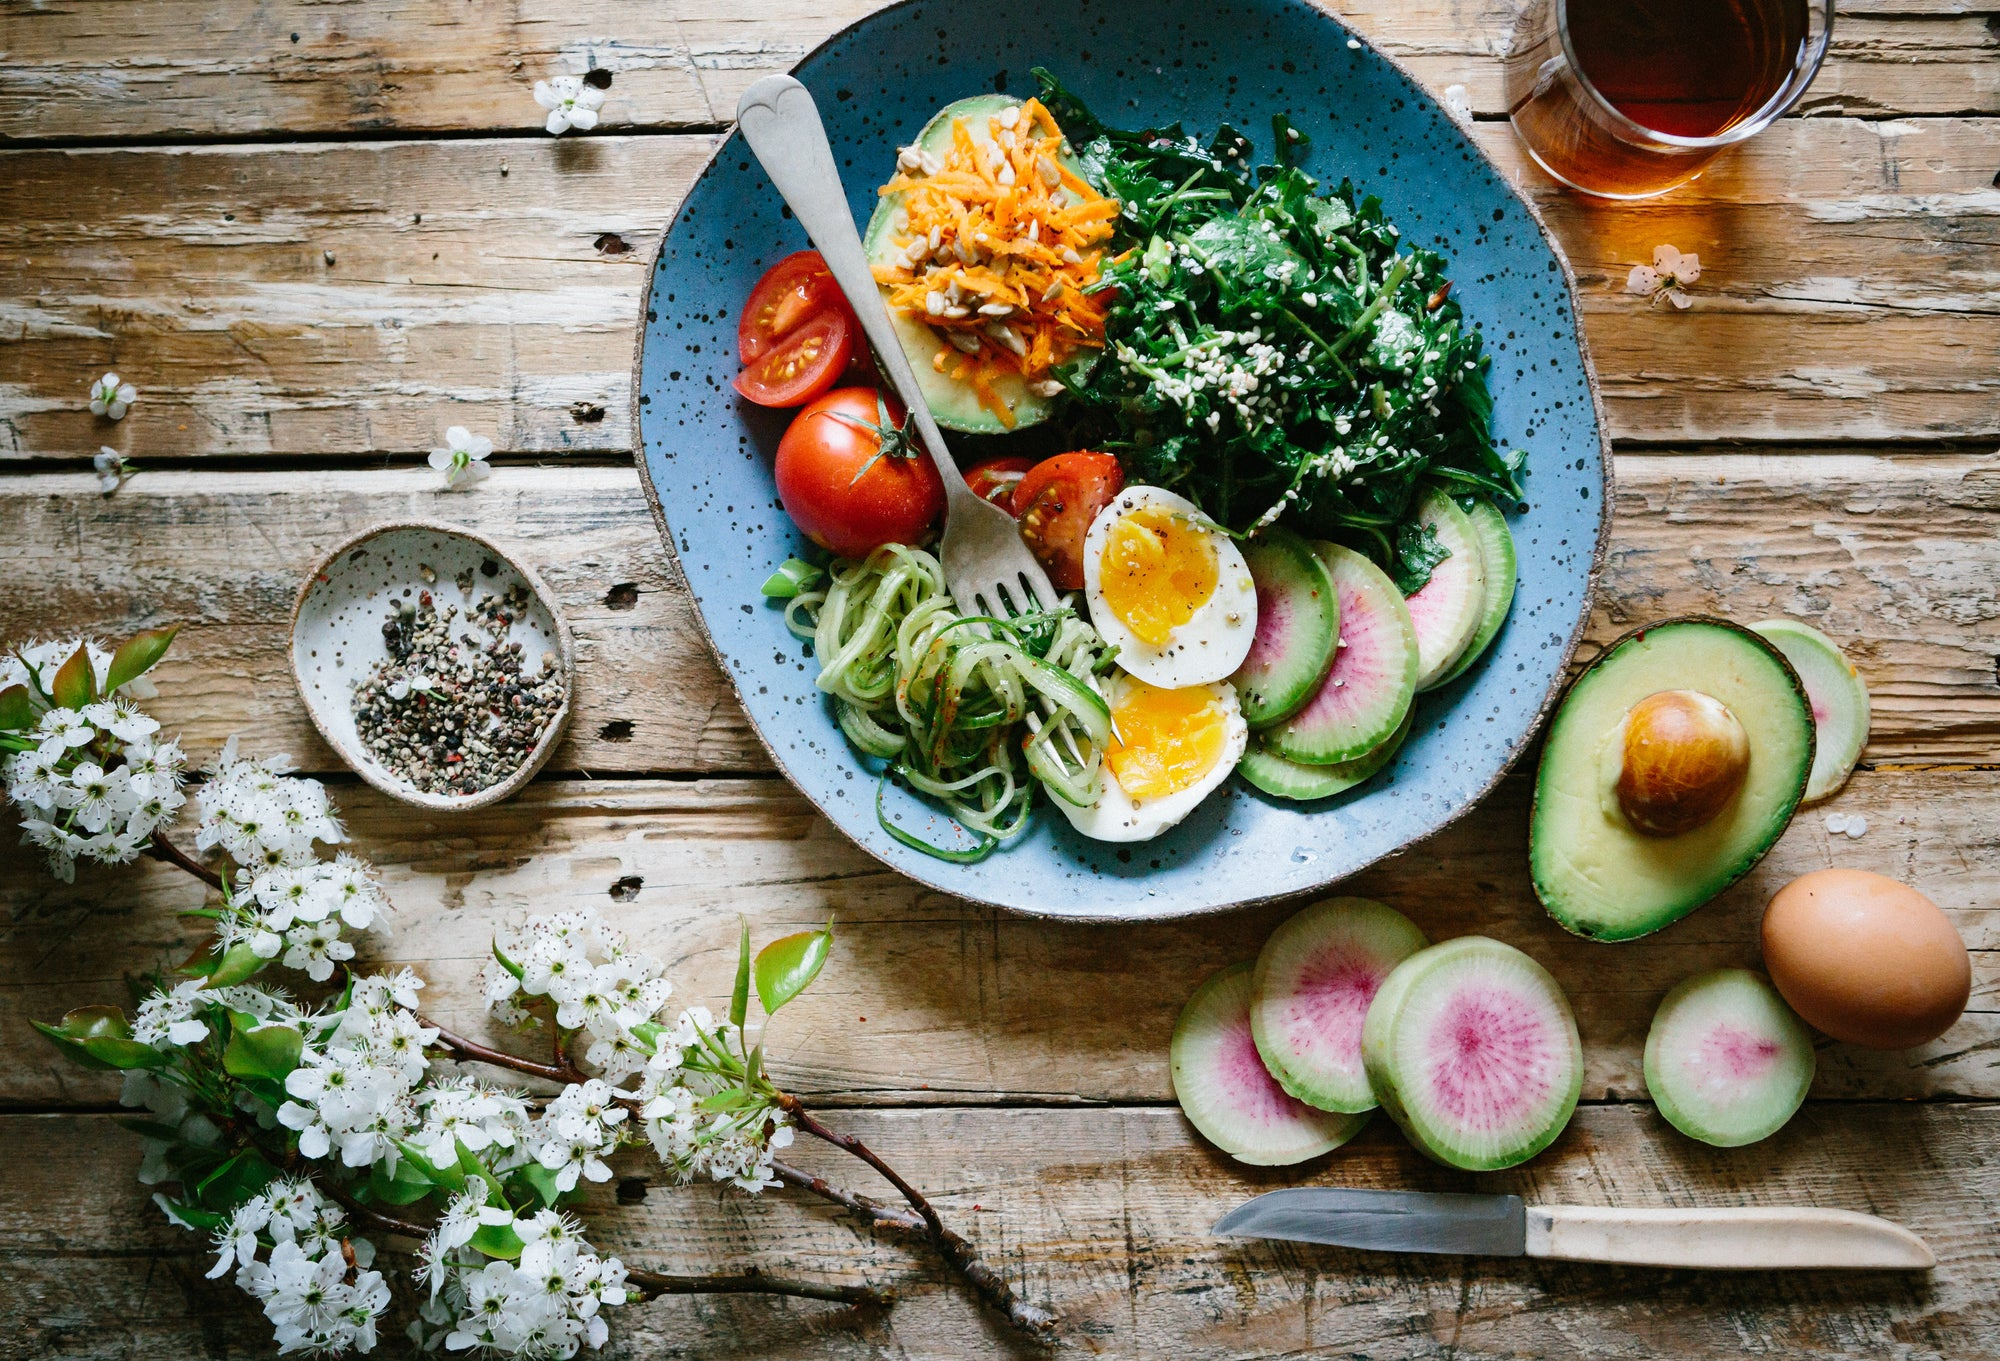 9 tips on supercharging your keto diet [PART 2]